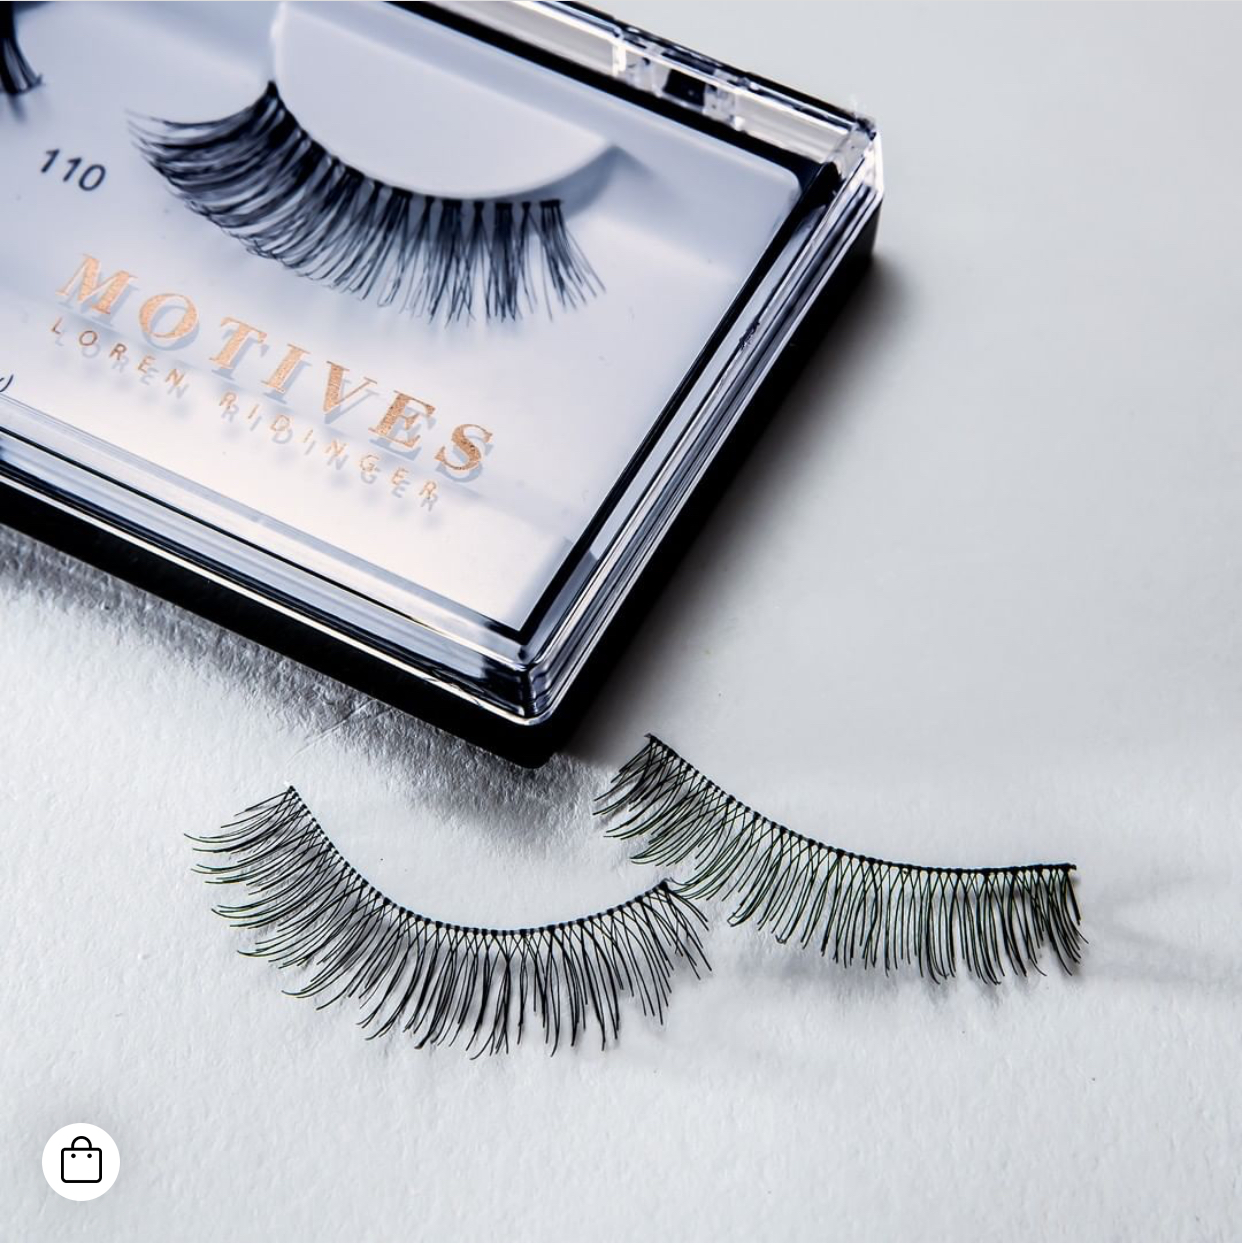 5 Occasions To Wear Artificial Lashes